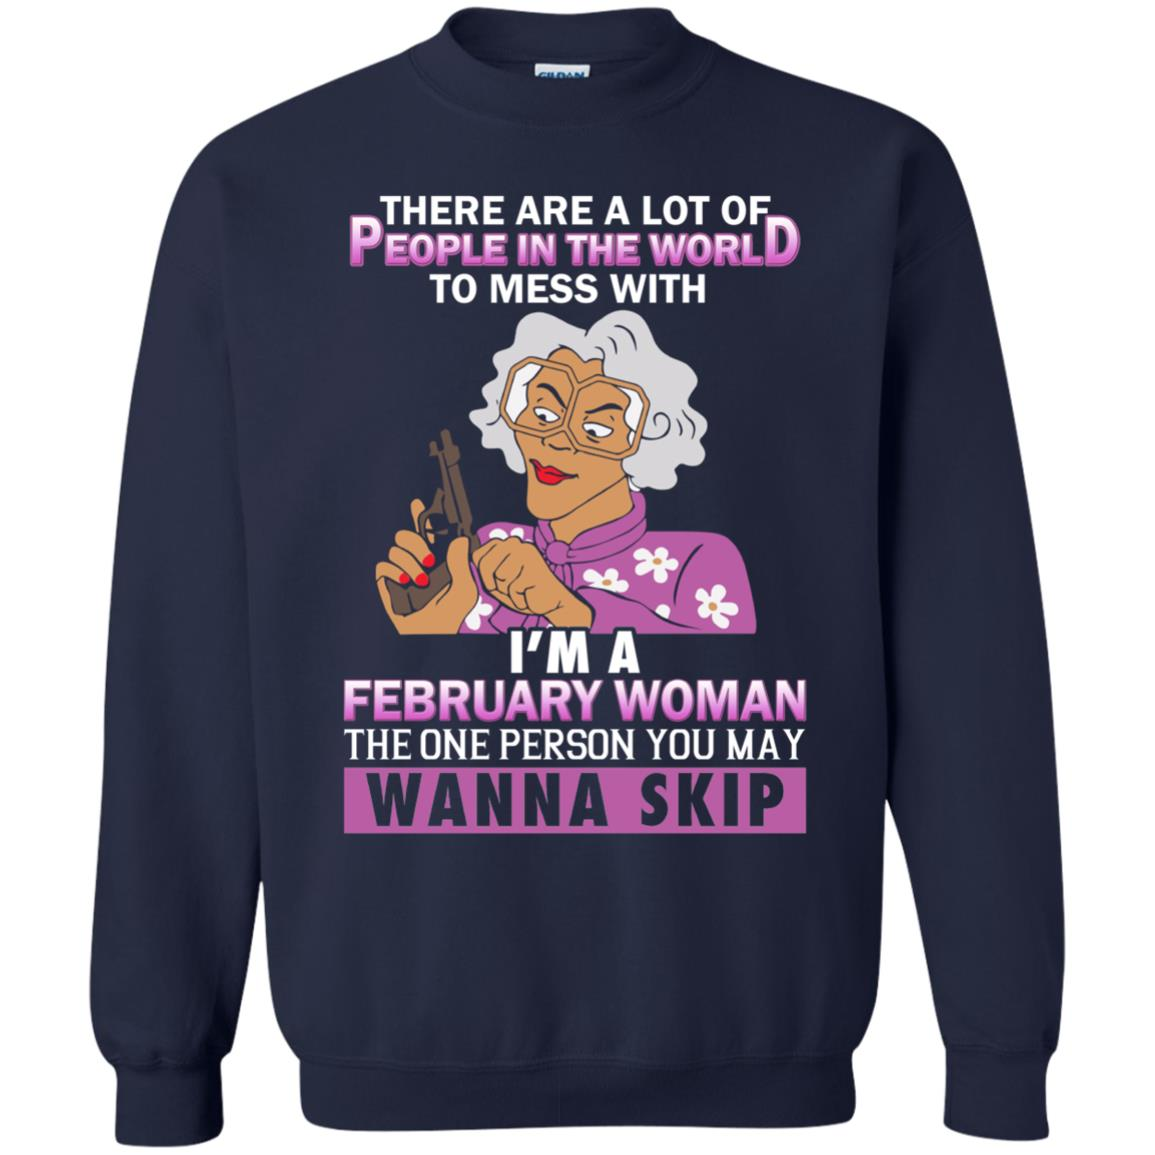 Madea: There are a lot of people in the world I'm a February Woman shirt - Icestork